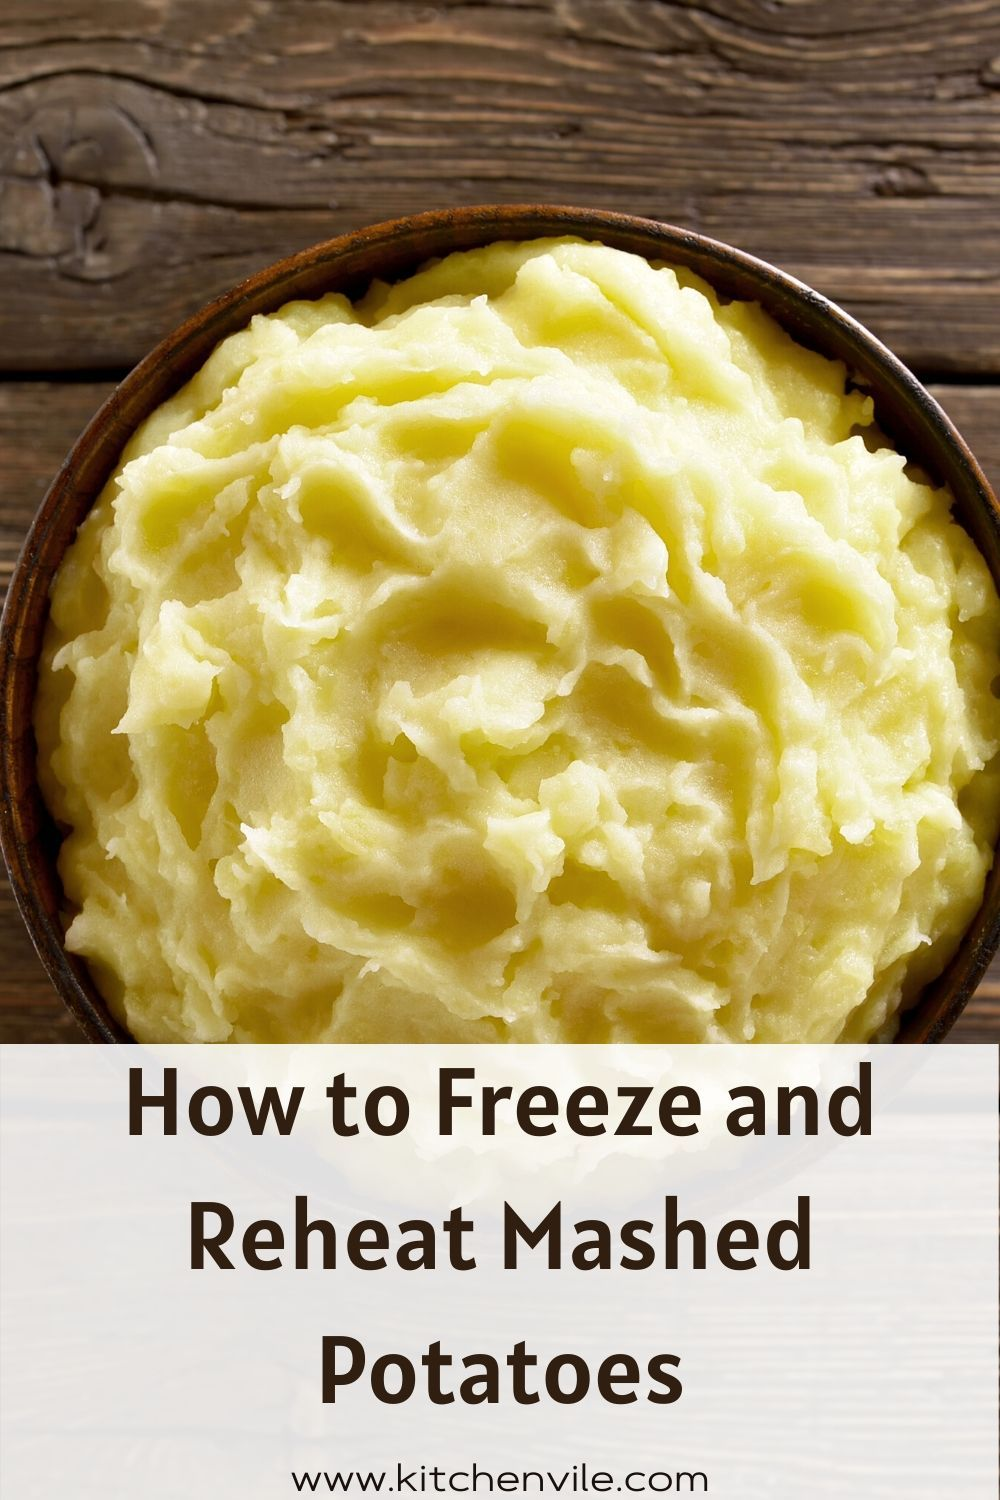 How to freeze and reheat mashed potatoes